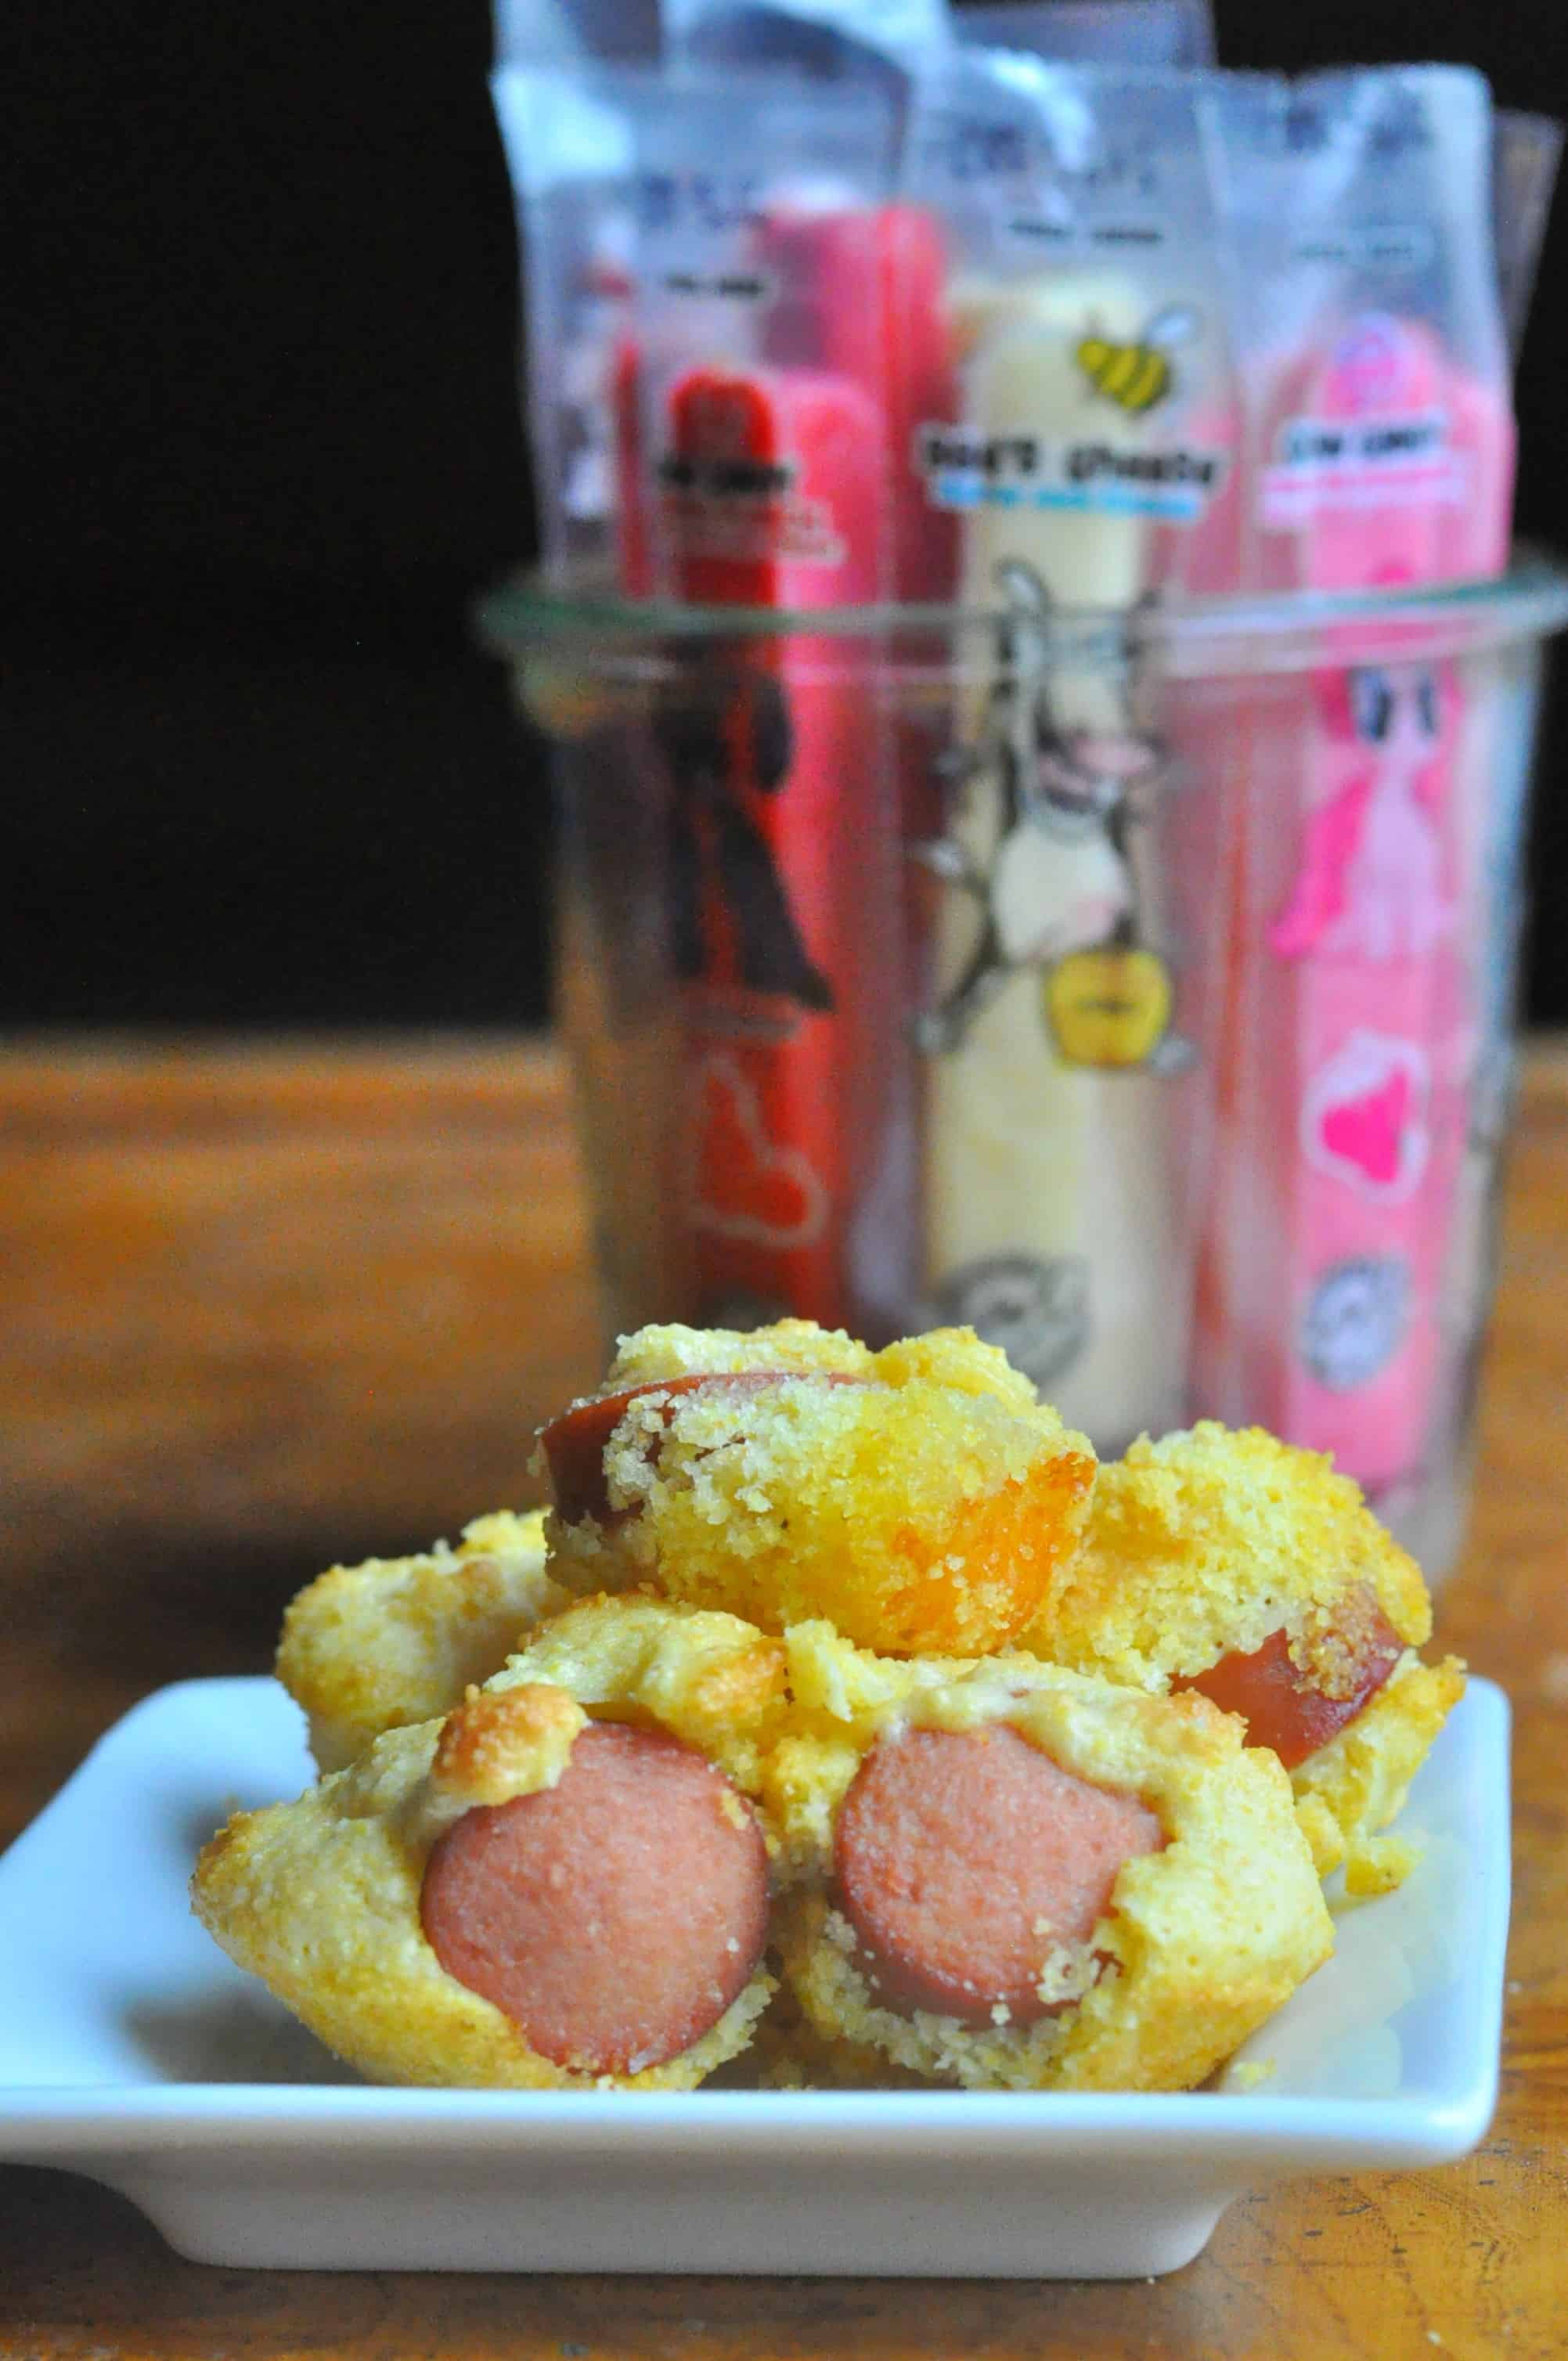 Cheesy Mini Corn Dog Muffins Cow Candy Easy Kids Recipe A super easy Cheesy Mini Corn Dog Muffins recipe that makes a great weeknight meal, fun school lunch, or game day appetizer. http://diningwithalice.com/kids/cheesy-mini-corn-dog-muffins/